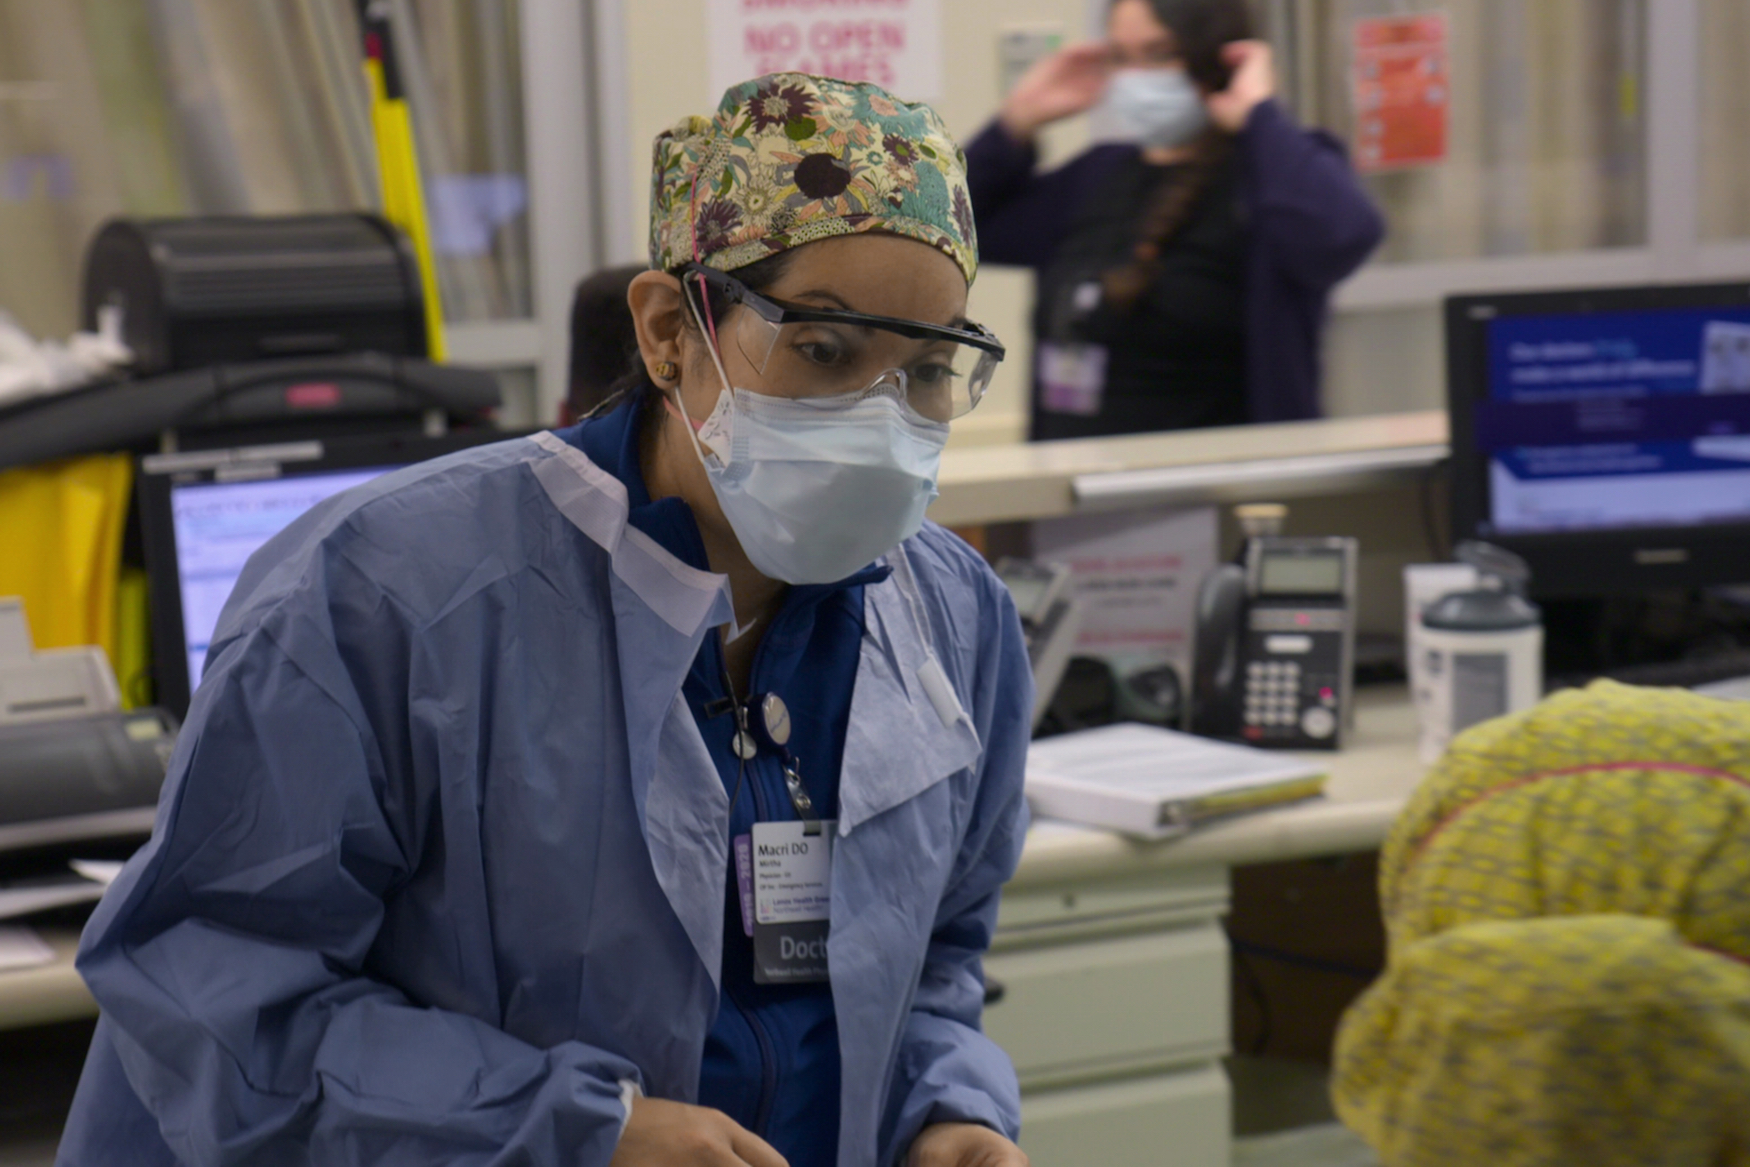 Lenox Hill Netflix Series New Episode On Hospital S Covid Response Indiewire